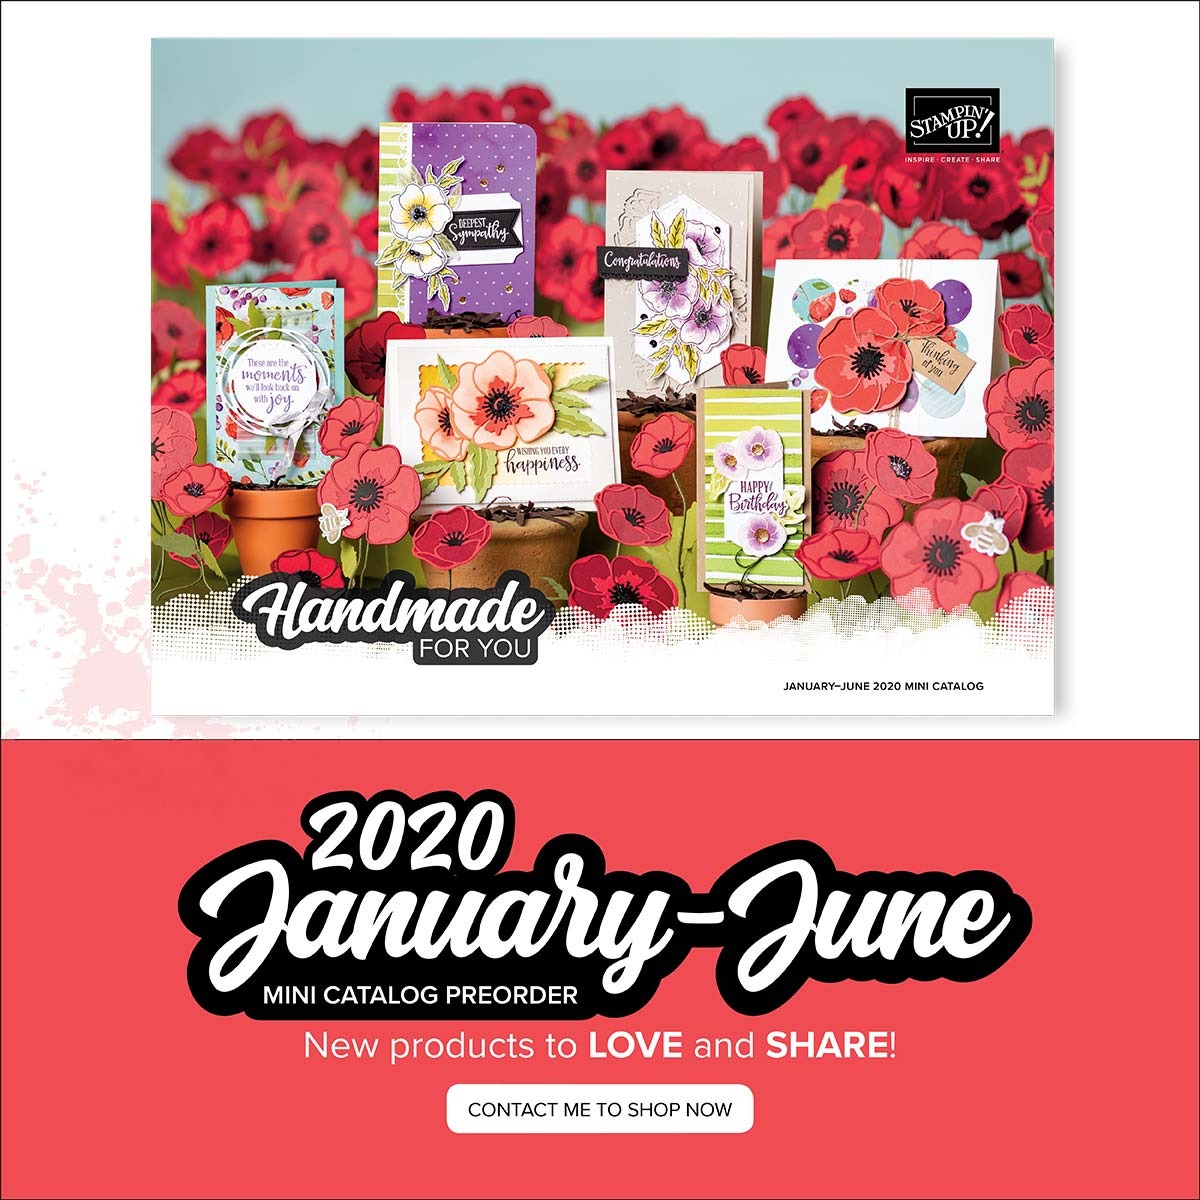 Jan-June 2020 Mini Catalog